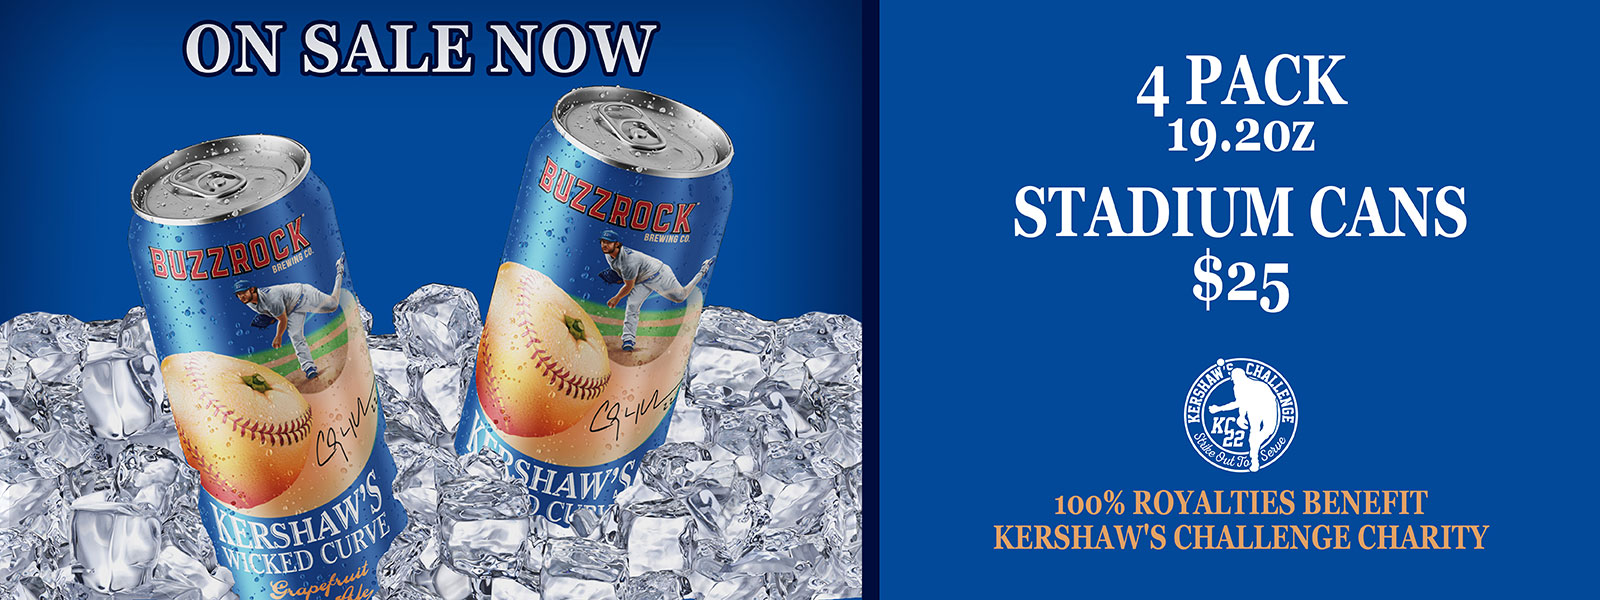 Kershaw's Wicked Curve 4-pack of 19.2 oz stadium cans - on sale now $25